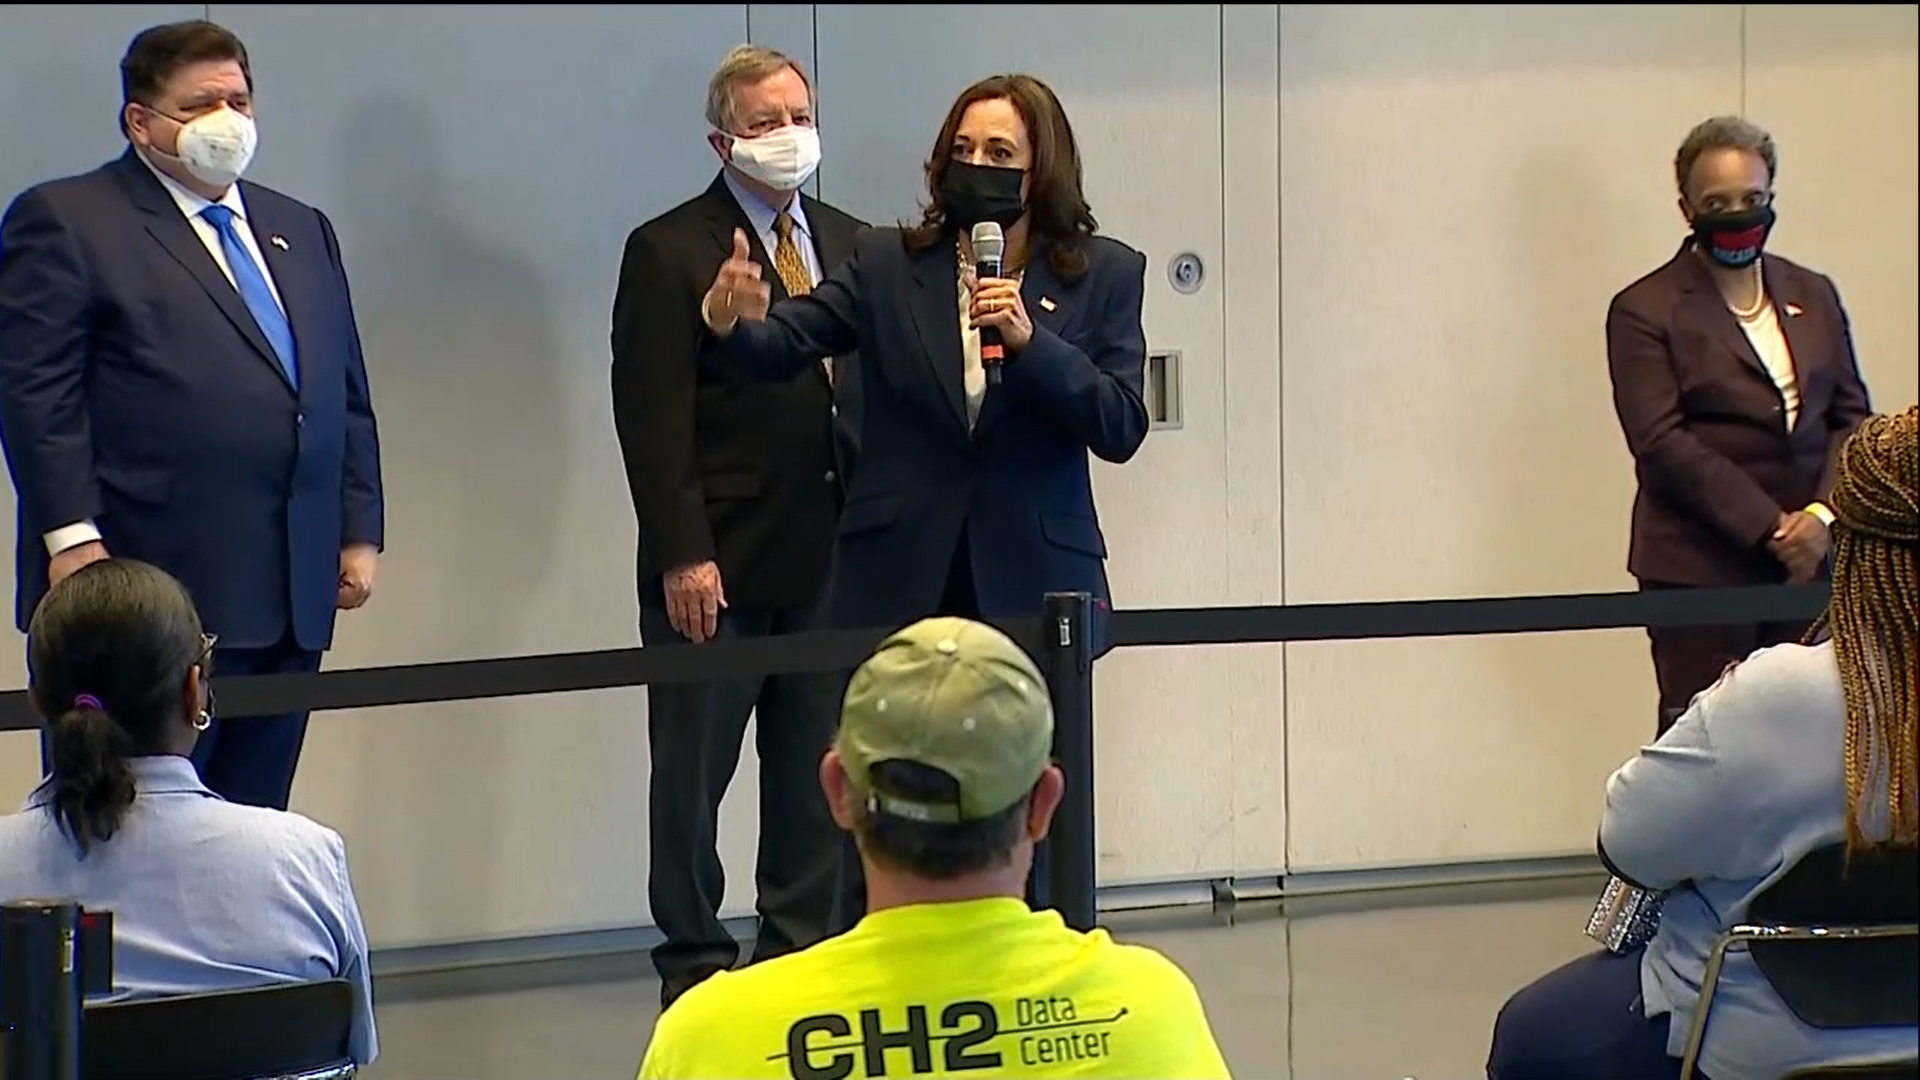 VP Harris makes a brief stop in Chicago